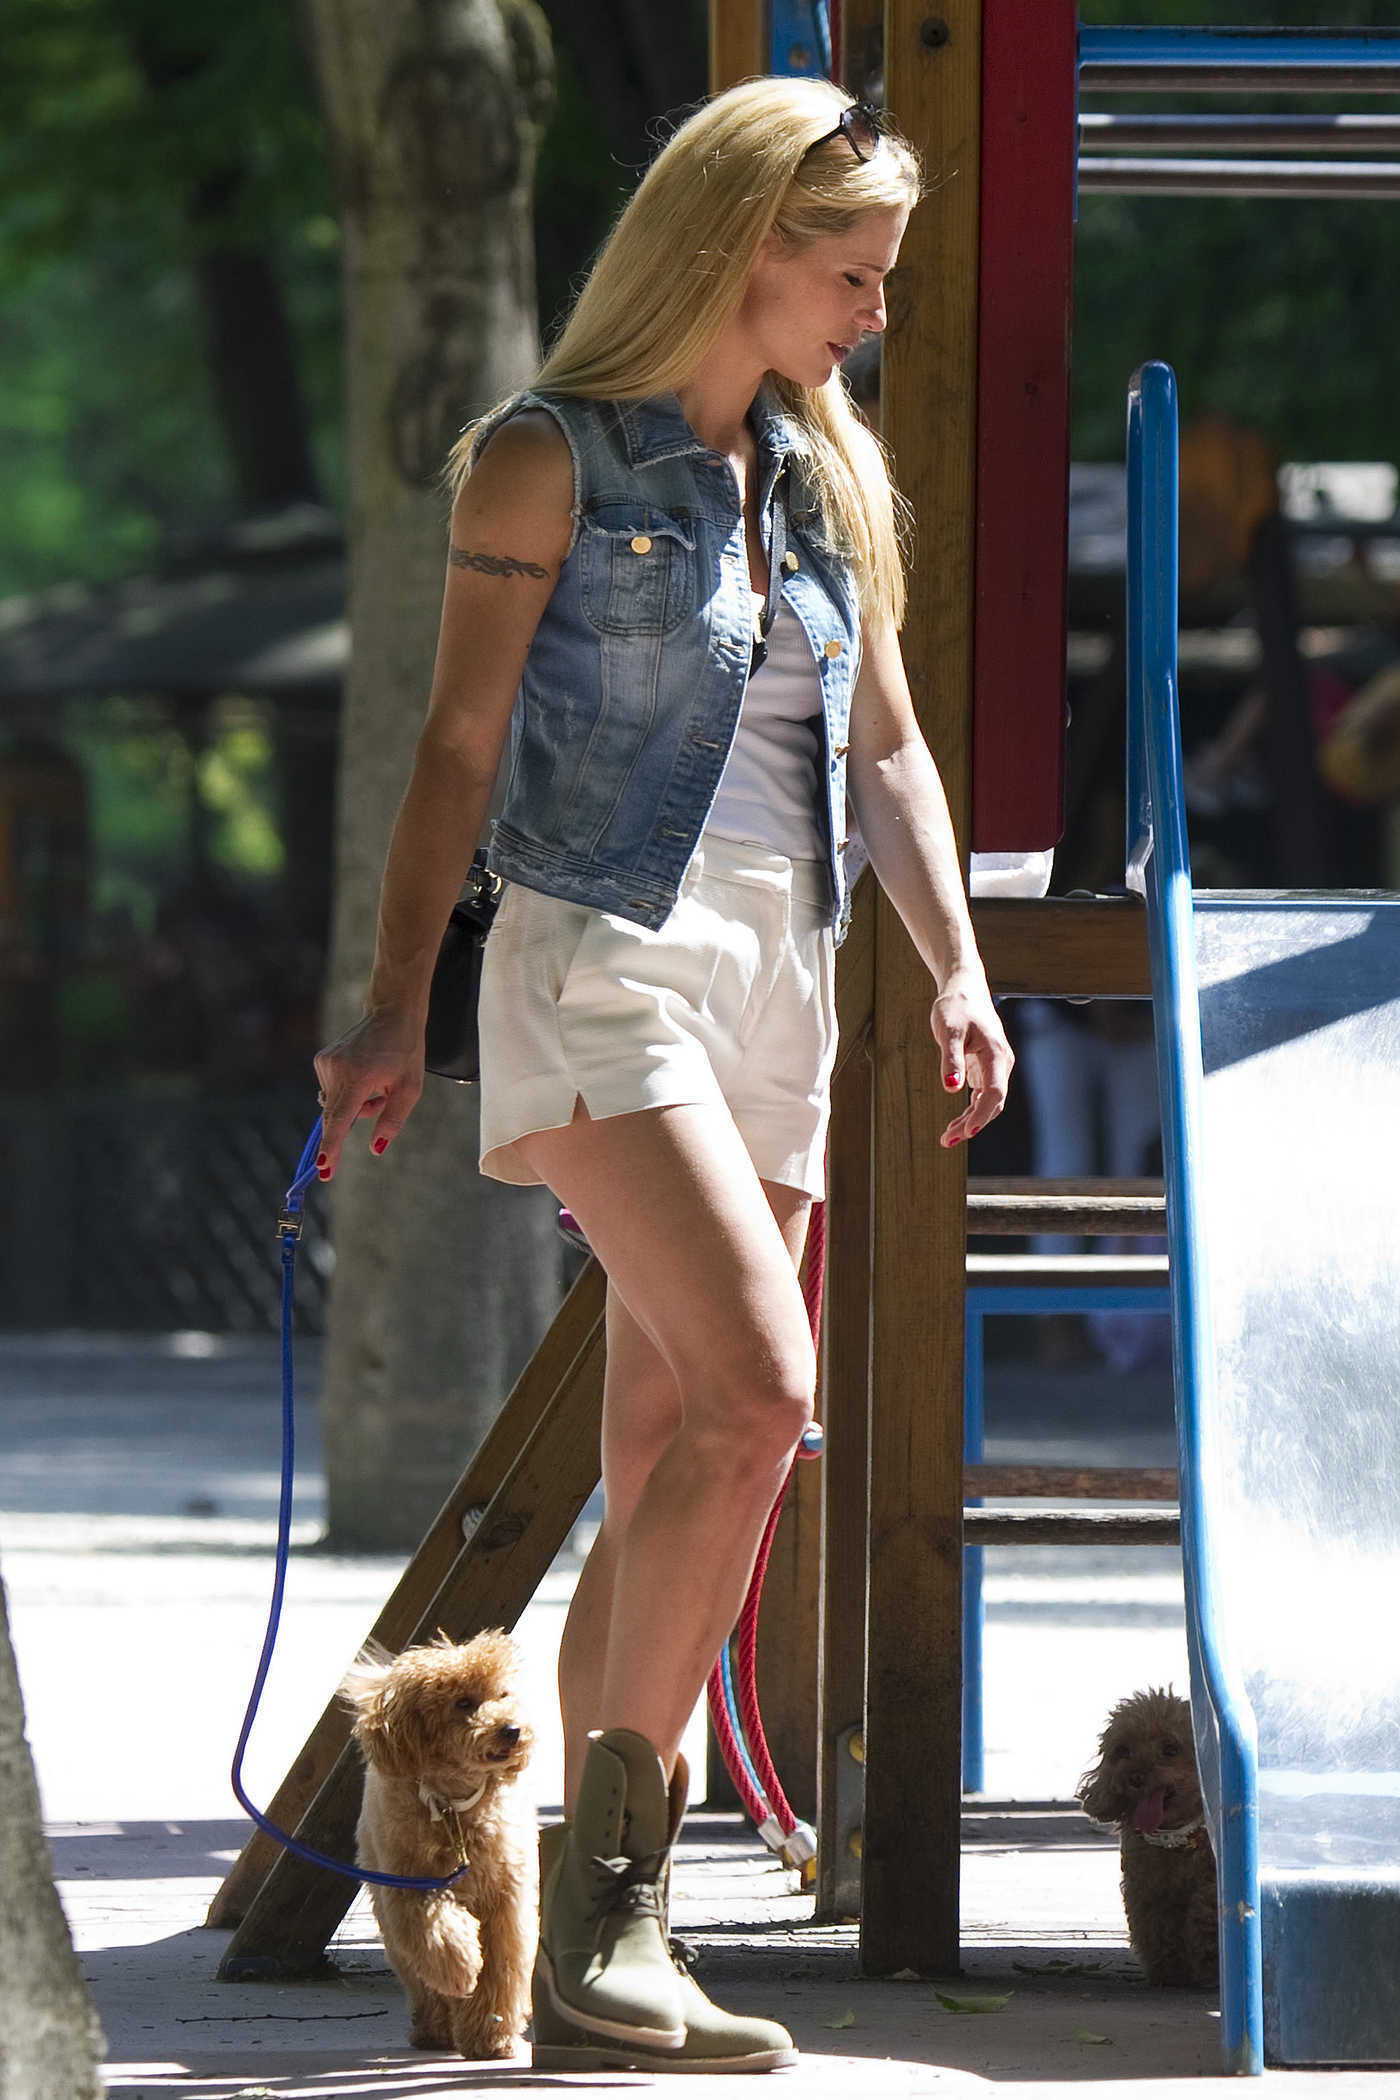 Michelle Hunziker Walks Her Dog at the Park in Milan 07/20/2017